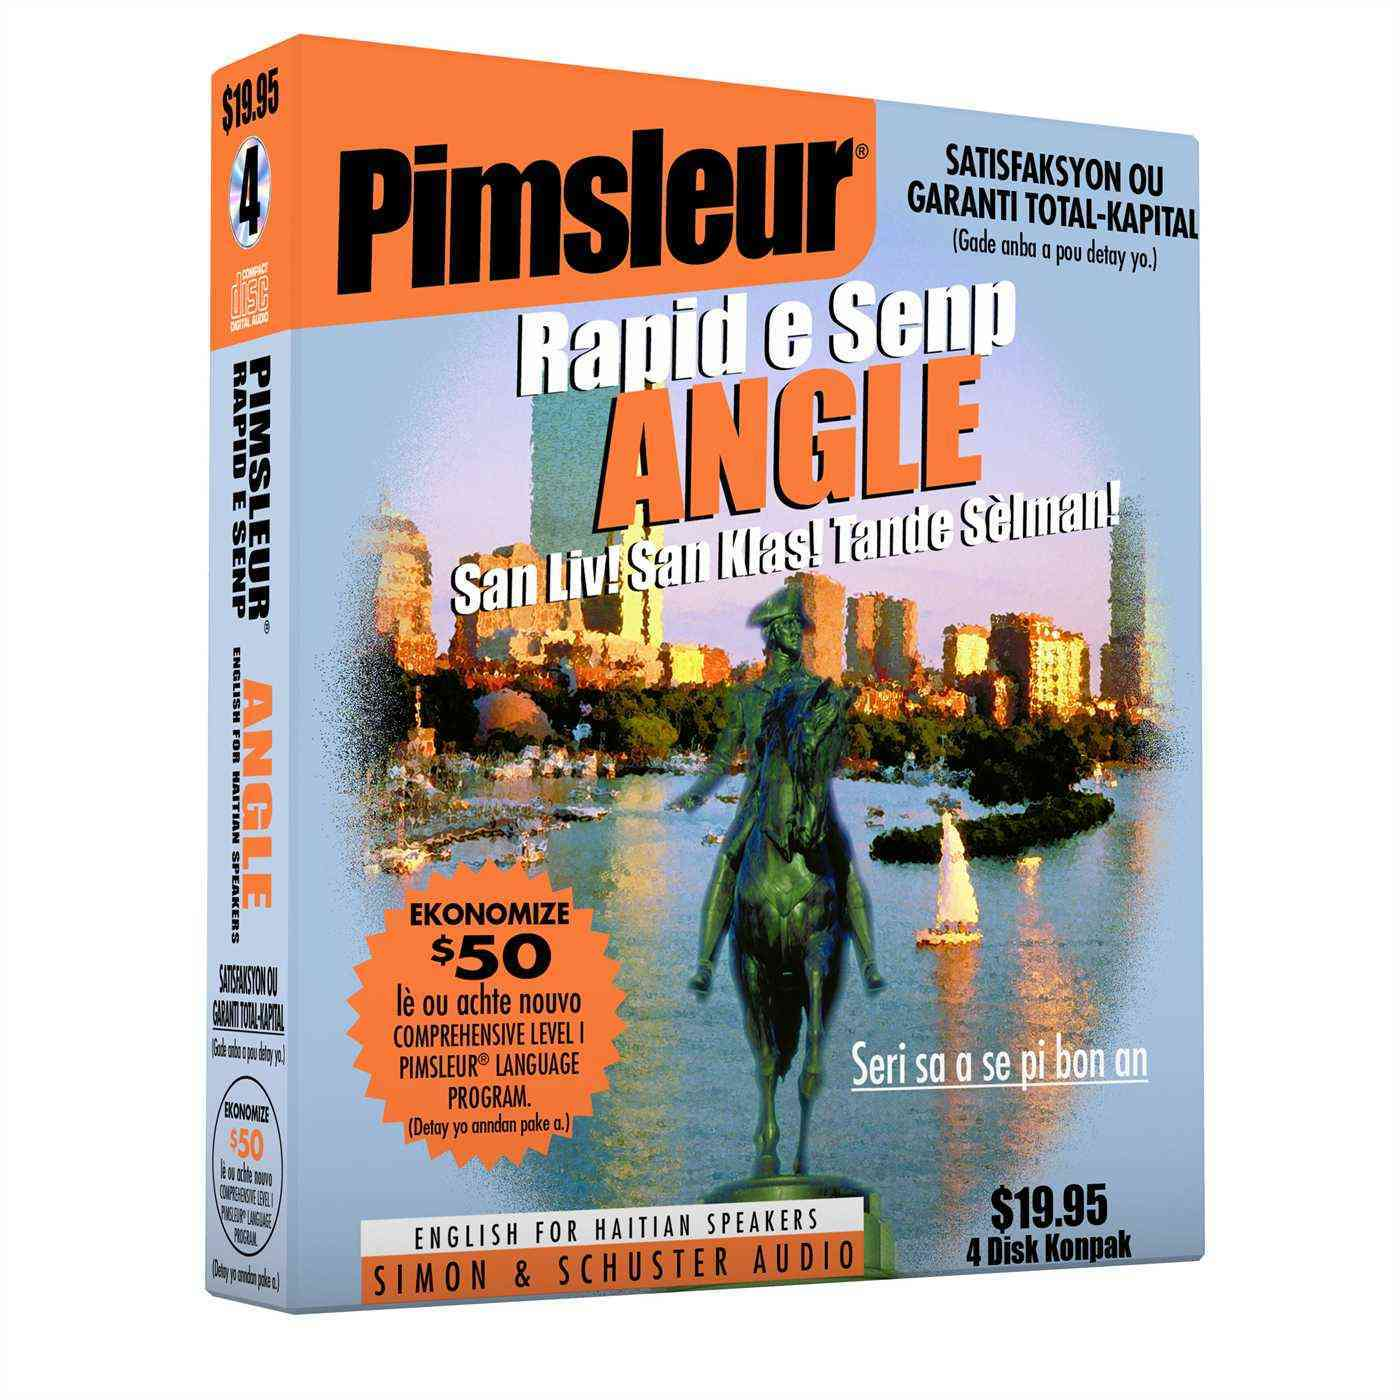 Pimsleur,  Pimsleur Language Programs - Pimsleur Rapid e Senp Angle English For Haitian Speakers - San Liv! San Kias! Tande Selman!